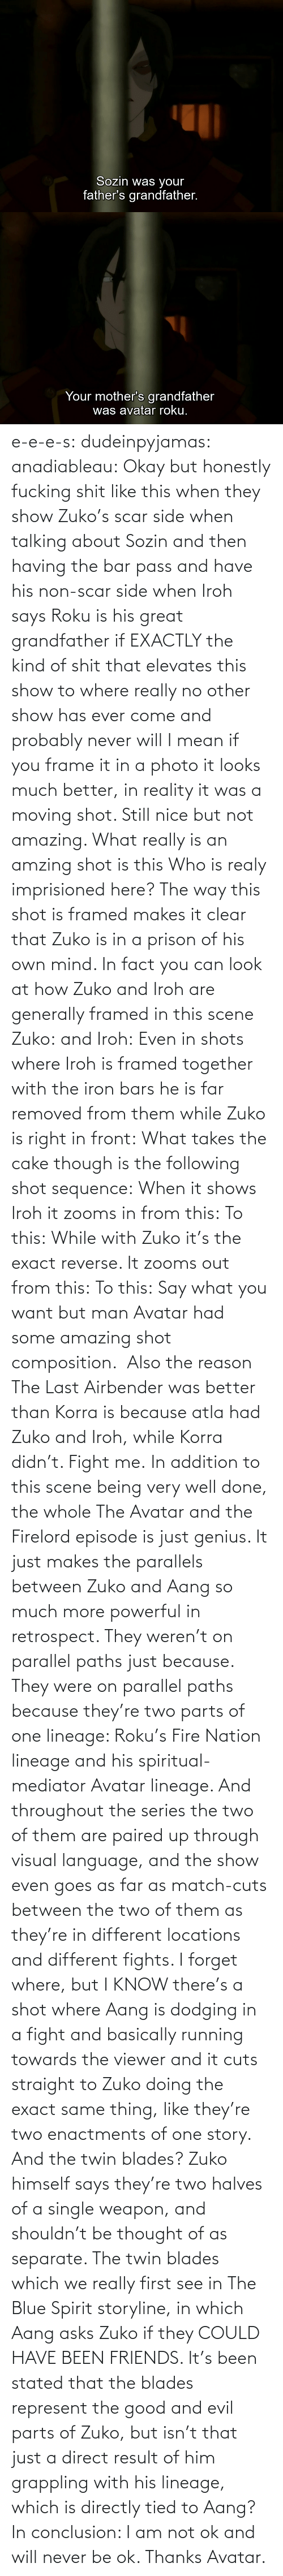 through: e-e-e-s: dudeinpyjamas:   anadiableau: Okay but honestly fucking shit like this when they show Zuko's scar side when talking about Sozin and then having the bar pass and have his non-scar side when Iroh says Roku is his great grandfather if EXACTLY the kind of shit that elevates this show to where really no other show has ever come and probably never will I mean if you frame it in a photo it looks much better, in reality it was a moving shot. Still nice but not amazing. What really is an amzing shot is this Who is realy imprisioned here? The way this shot is framed makes it clear that Zuko is in a prison of his own mind. In fact you can look at how Zuko and Iroh are generally framed in this scene Zuko: and Iroh: Even in shots where Iroh is framed together with the iron bars he is far removed from them while Zuko is right in front:  What takes the cake though is the following shot sequence: When it shows Iroh it zooms in from this: To this: While with Zuko it's the exact reverse. It zooms out from this: To this: Say what you want but man Avatar had some amazing shot composition.   Also the reason The Last Airbender was better than Korra is because atla had Zuko and Iroh, while Korra didn't. Fight me.    In addition to this scene being very well done, the whole The Avatar and the Firelord episode is just genius.  It just makes the parallels between Zuko and Aang so much more powerful in retrospect.  They weren't on parallel paths just because.  They were on parallel paths because they're two parts of one lineage: Roku's Fire Nation lineage and his spiritual-mediator Avatar lineage.  And throughout the series the two of them are paired up through visual language, and the show even goes as far as match-cuts between the two of them as they're in different locations and different fights.  I forget where, but I KNOW there's a shot where Aang is dodging in a fight and basically running towards the viewer and it cuts straight to Zuko doing the exact same thing, like they're two enactments of one story.   And the twin blades?  Zuko himself says they're two halves of a single weapon, and shouldn't be thought of as separate.  The twin blades which we really first see in The Blue Spirit storyline, in which Aang asks Zuko if they COULD HAVE BEEN FRIENDS.  It's been stated that the blades represent the good and evil parts of Zuko, but isn't that just a direct result of him grappling with his lineage, which is directly tied to Aang? In conclusion: I am not ok and will never be ok.  Thanks Avatar.